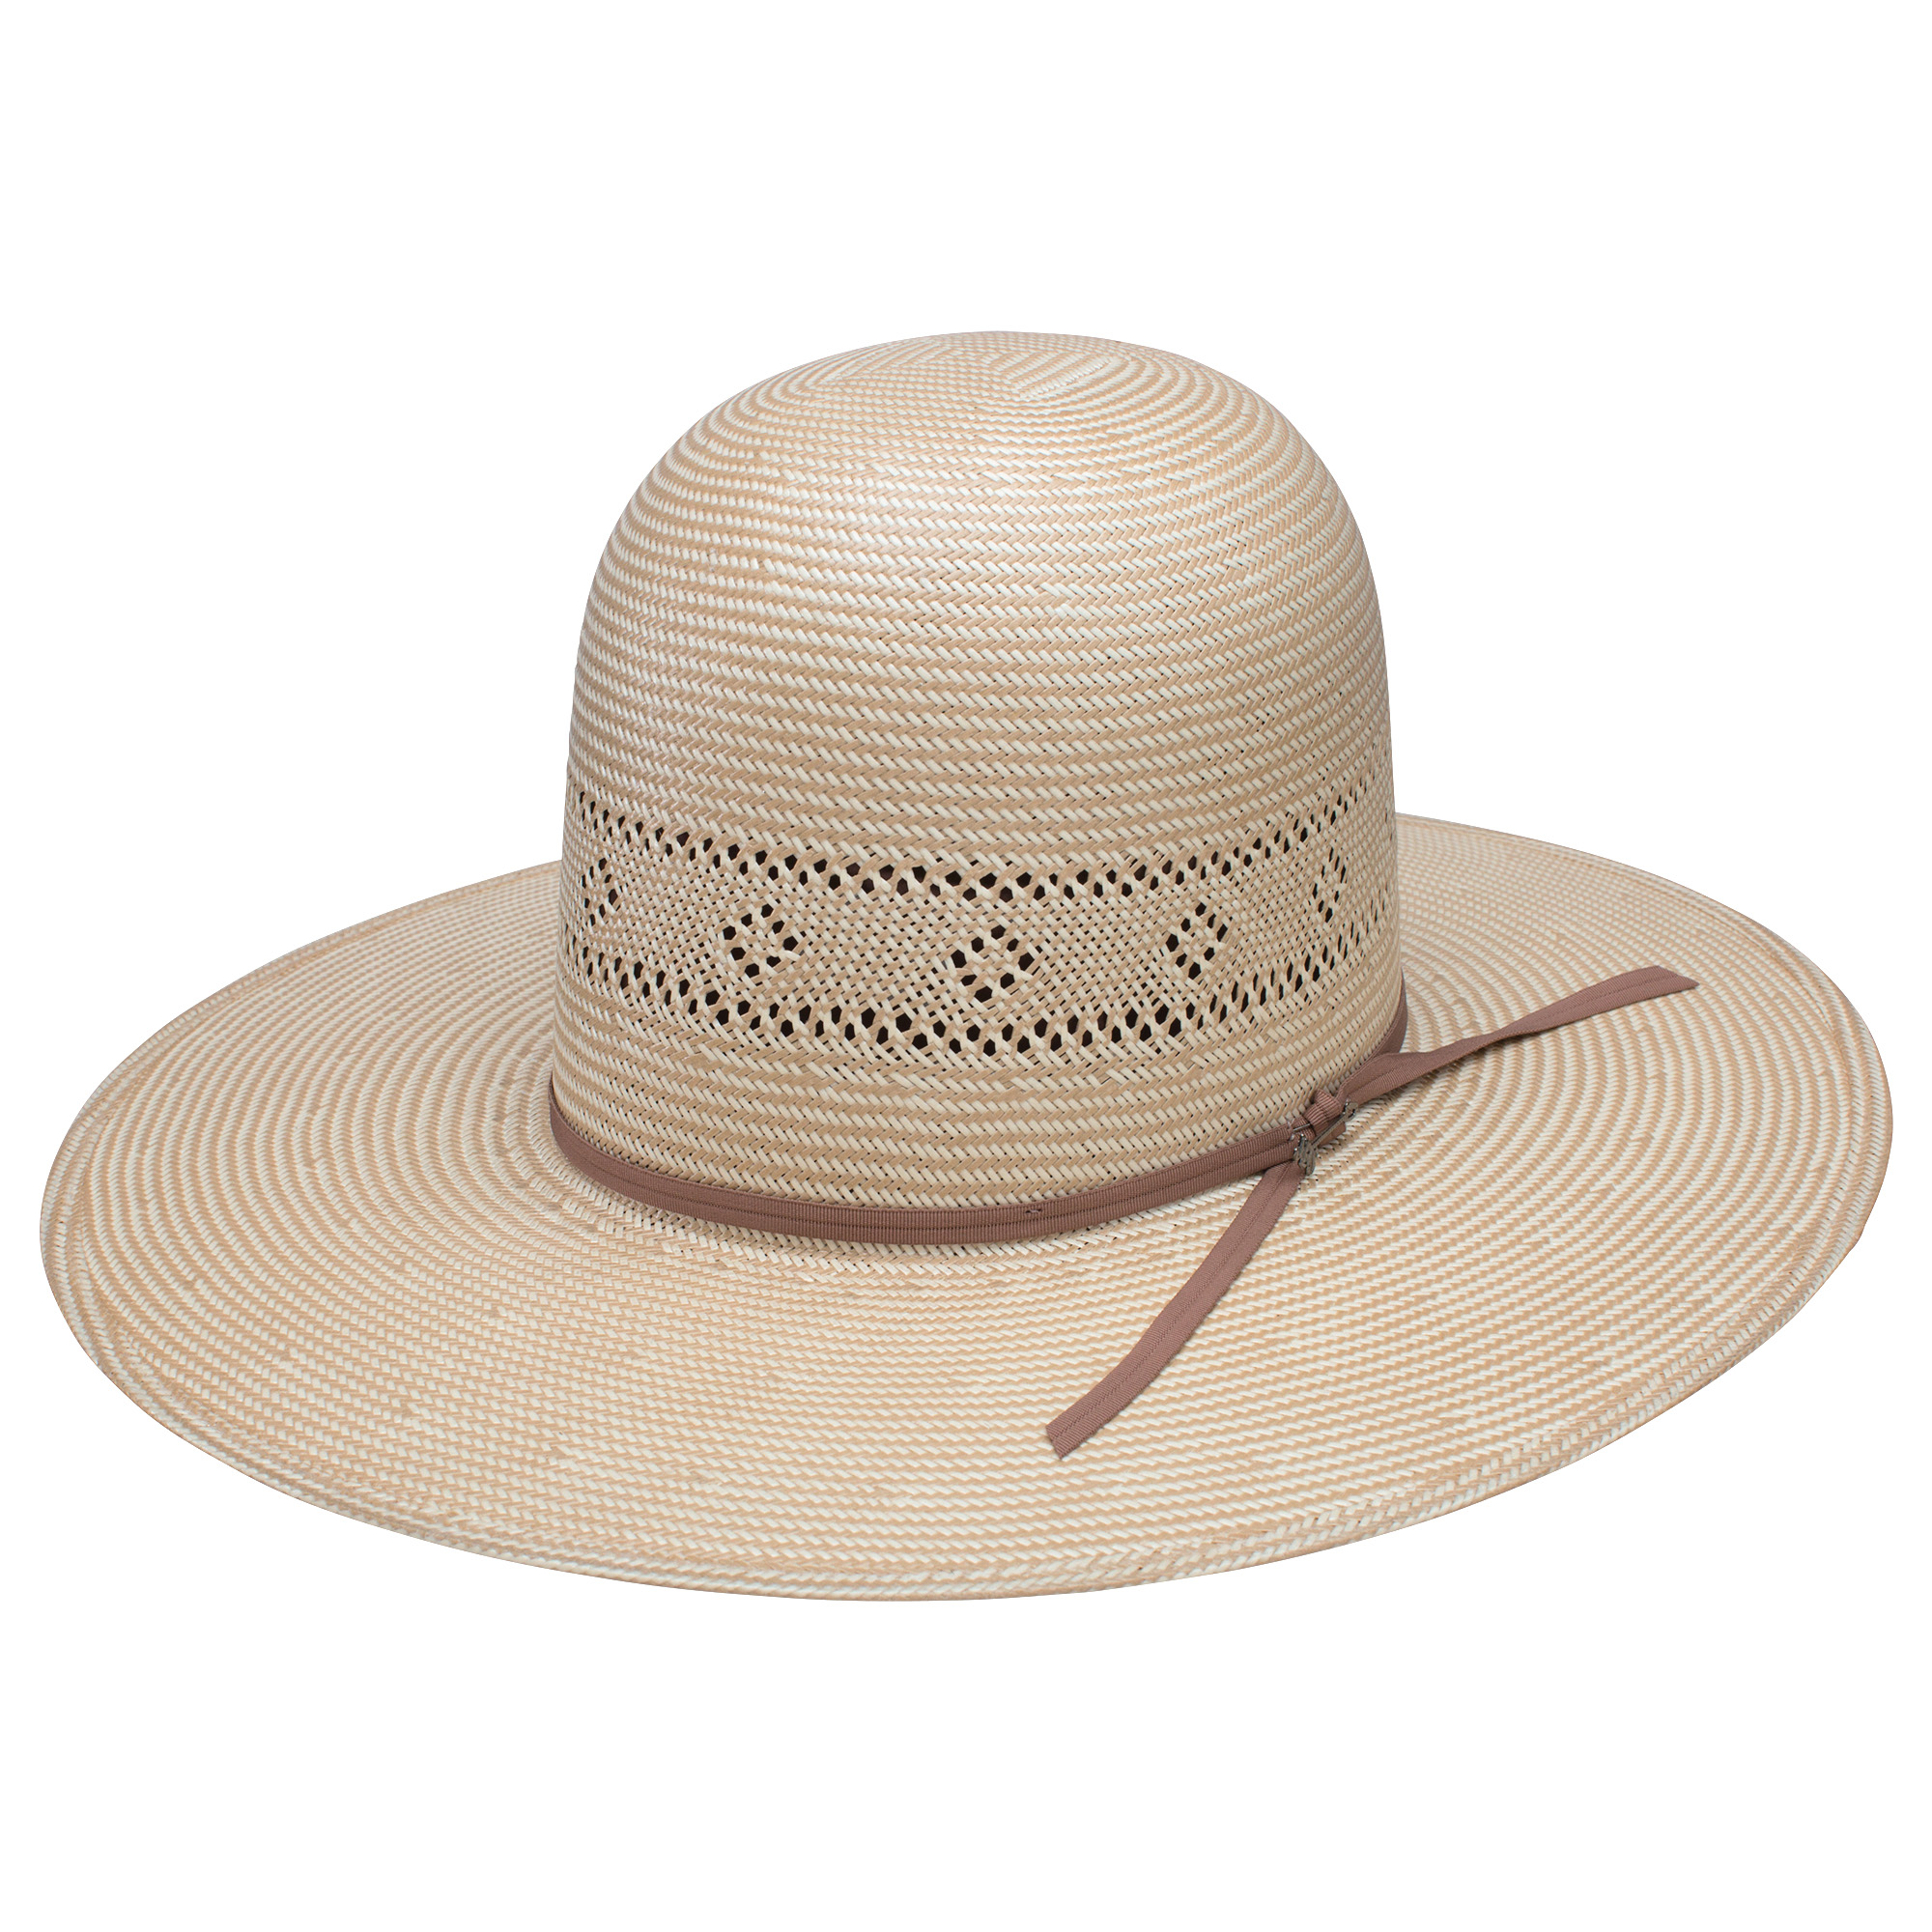 f990ea982de Stetson River Oaks 10X Straw Hat - Unshaped. Hover to zoom